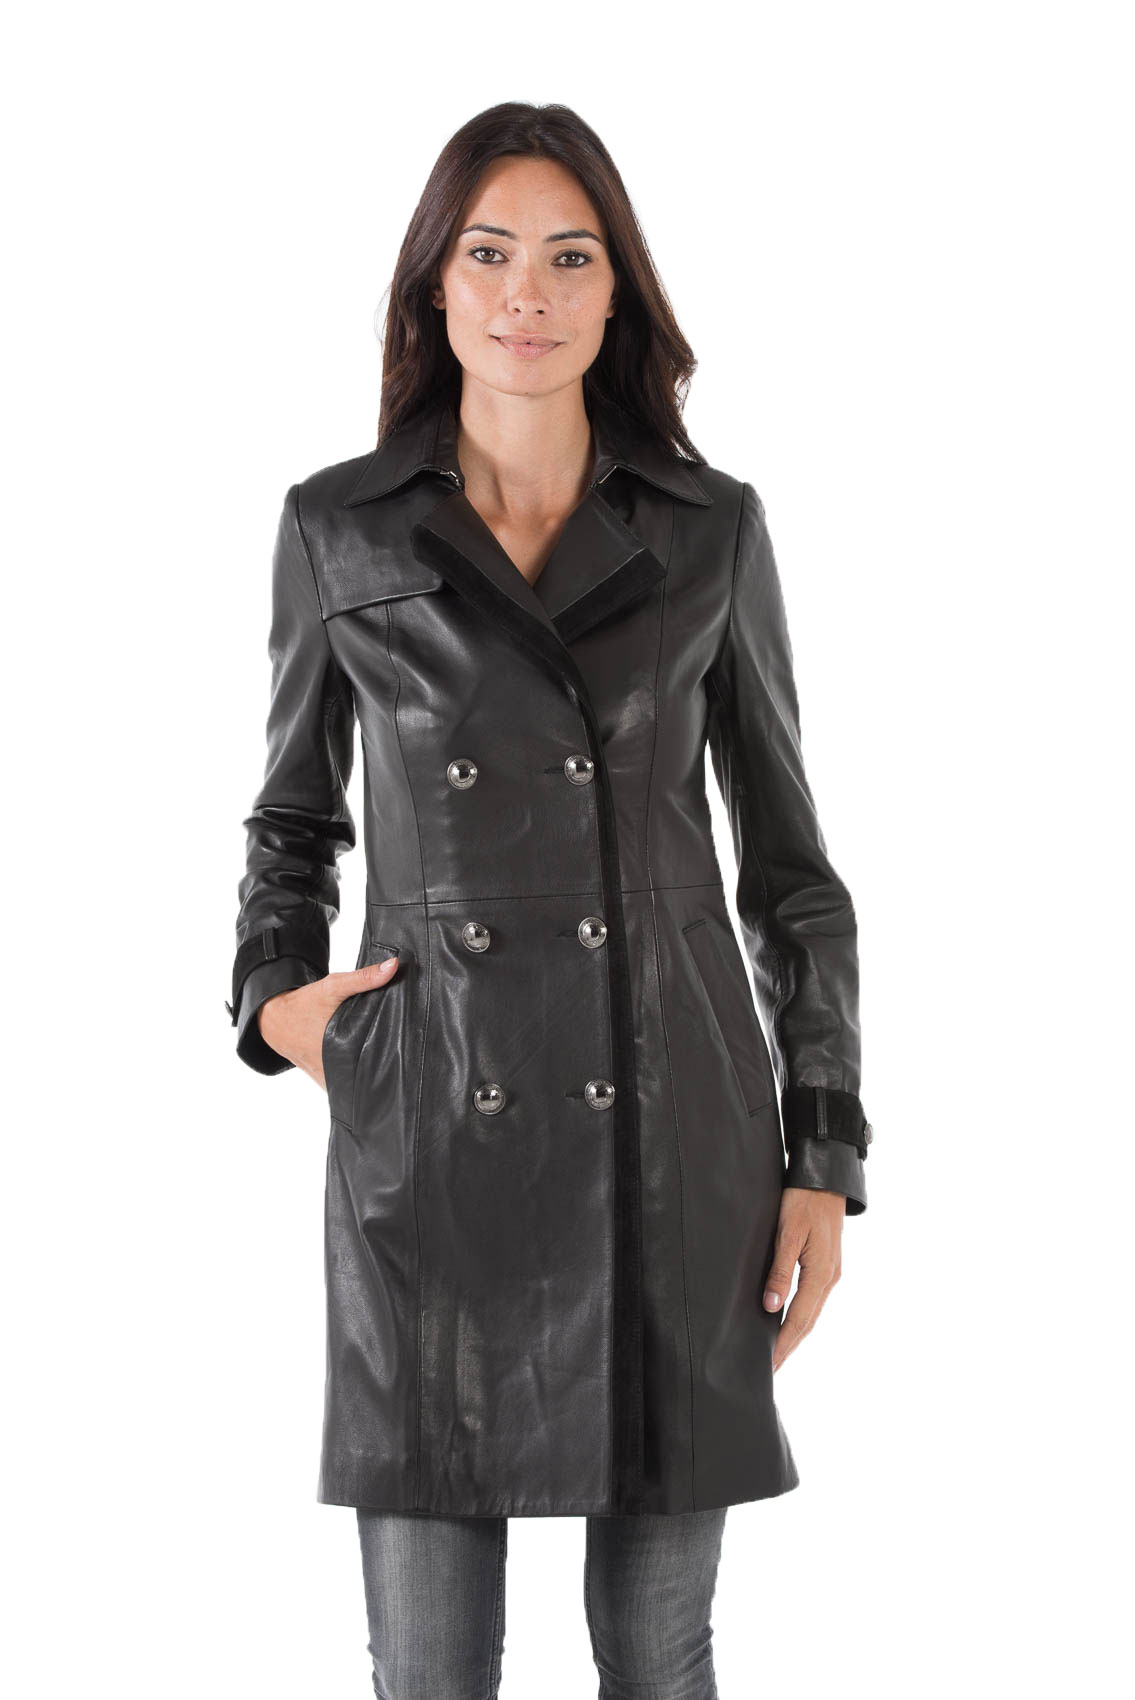 Find great deals on eBay for manteau fourrure. Shop with confidence.